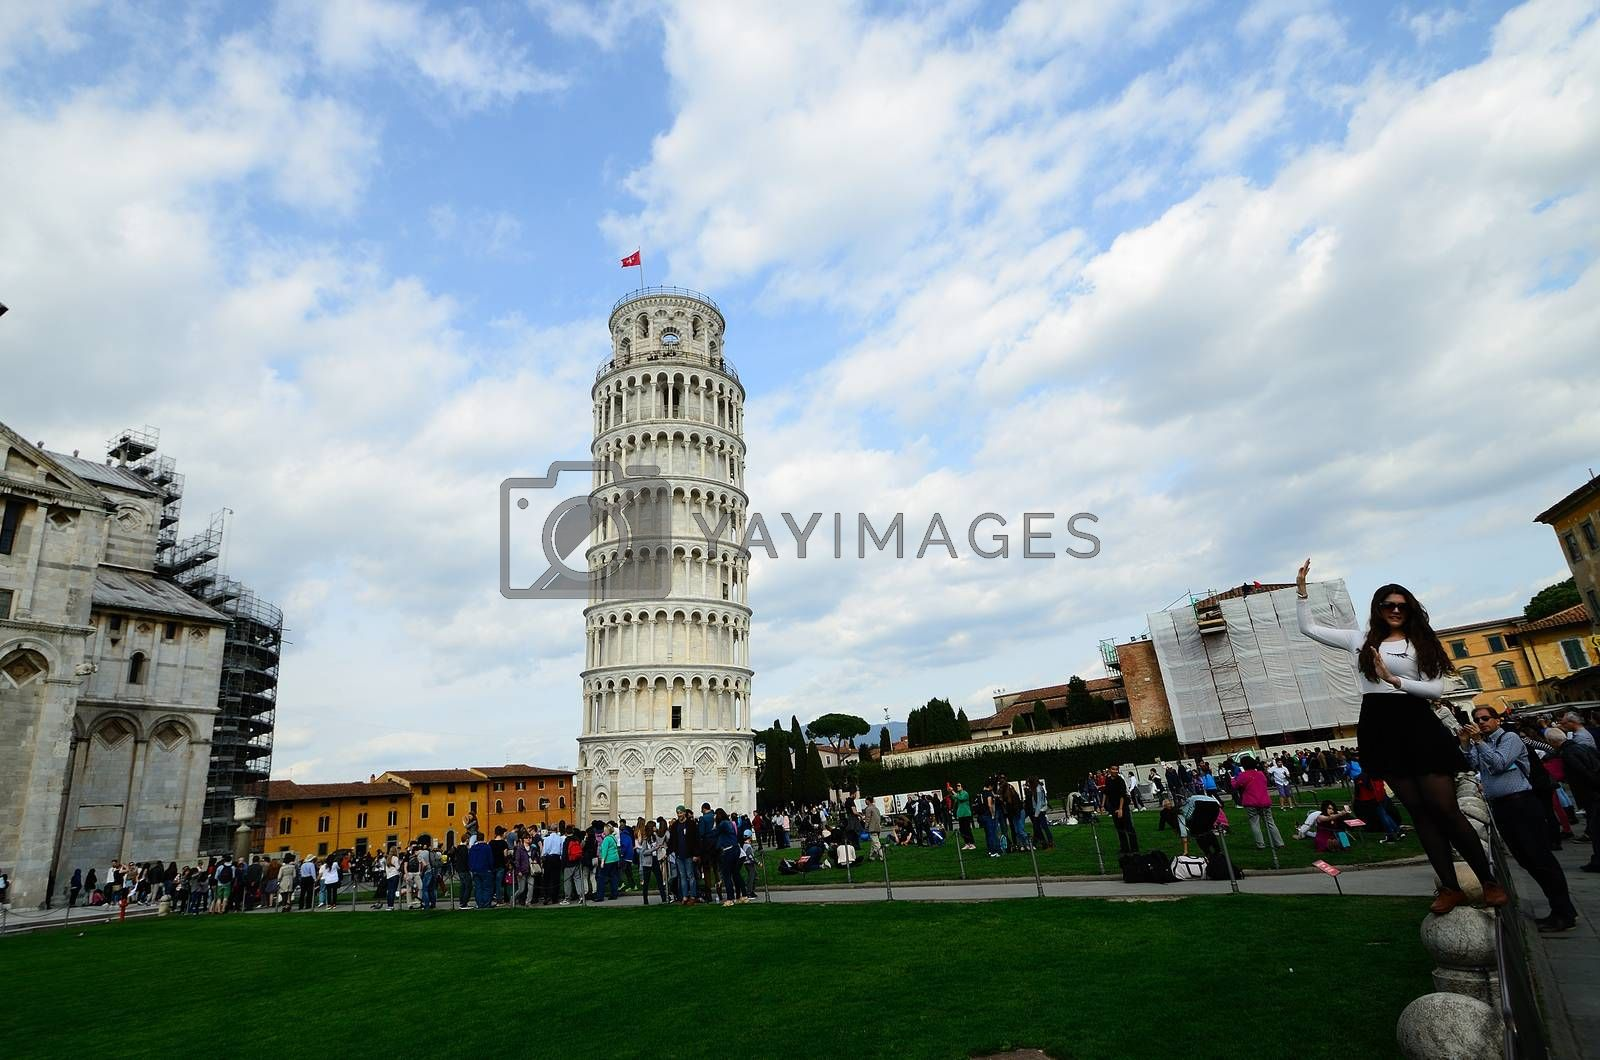 Leaning Tower of Pisa and many tourists during photographing